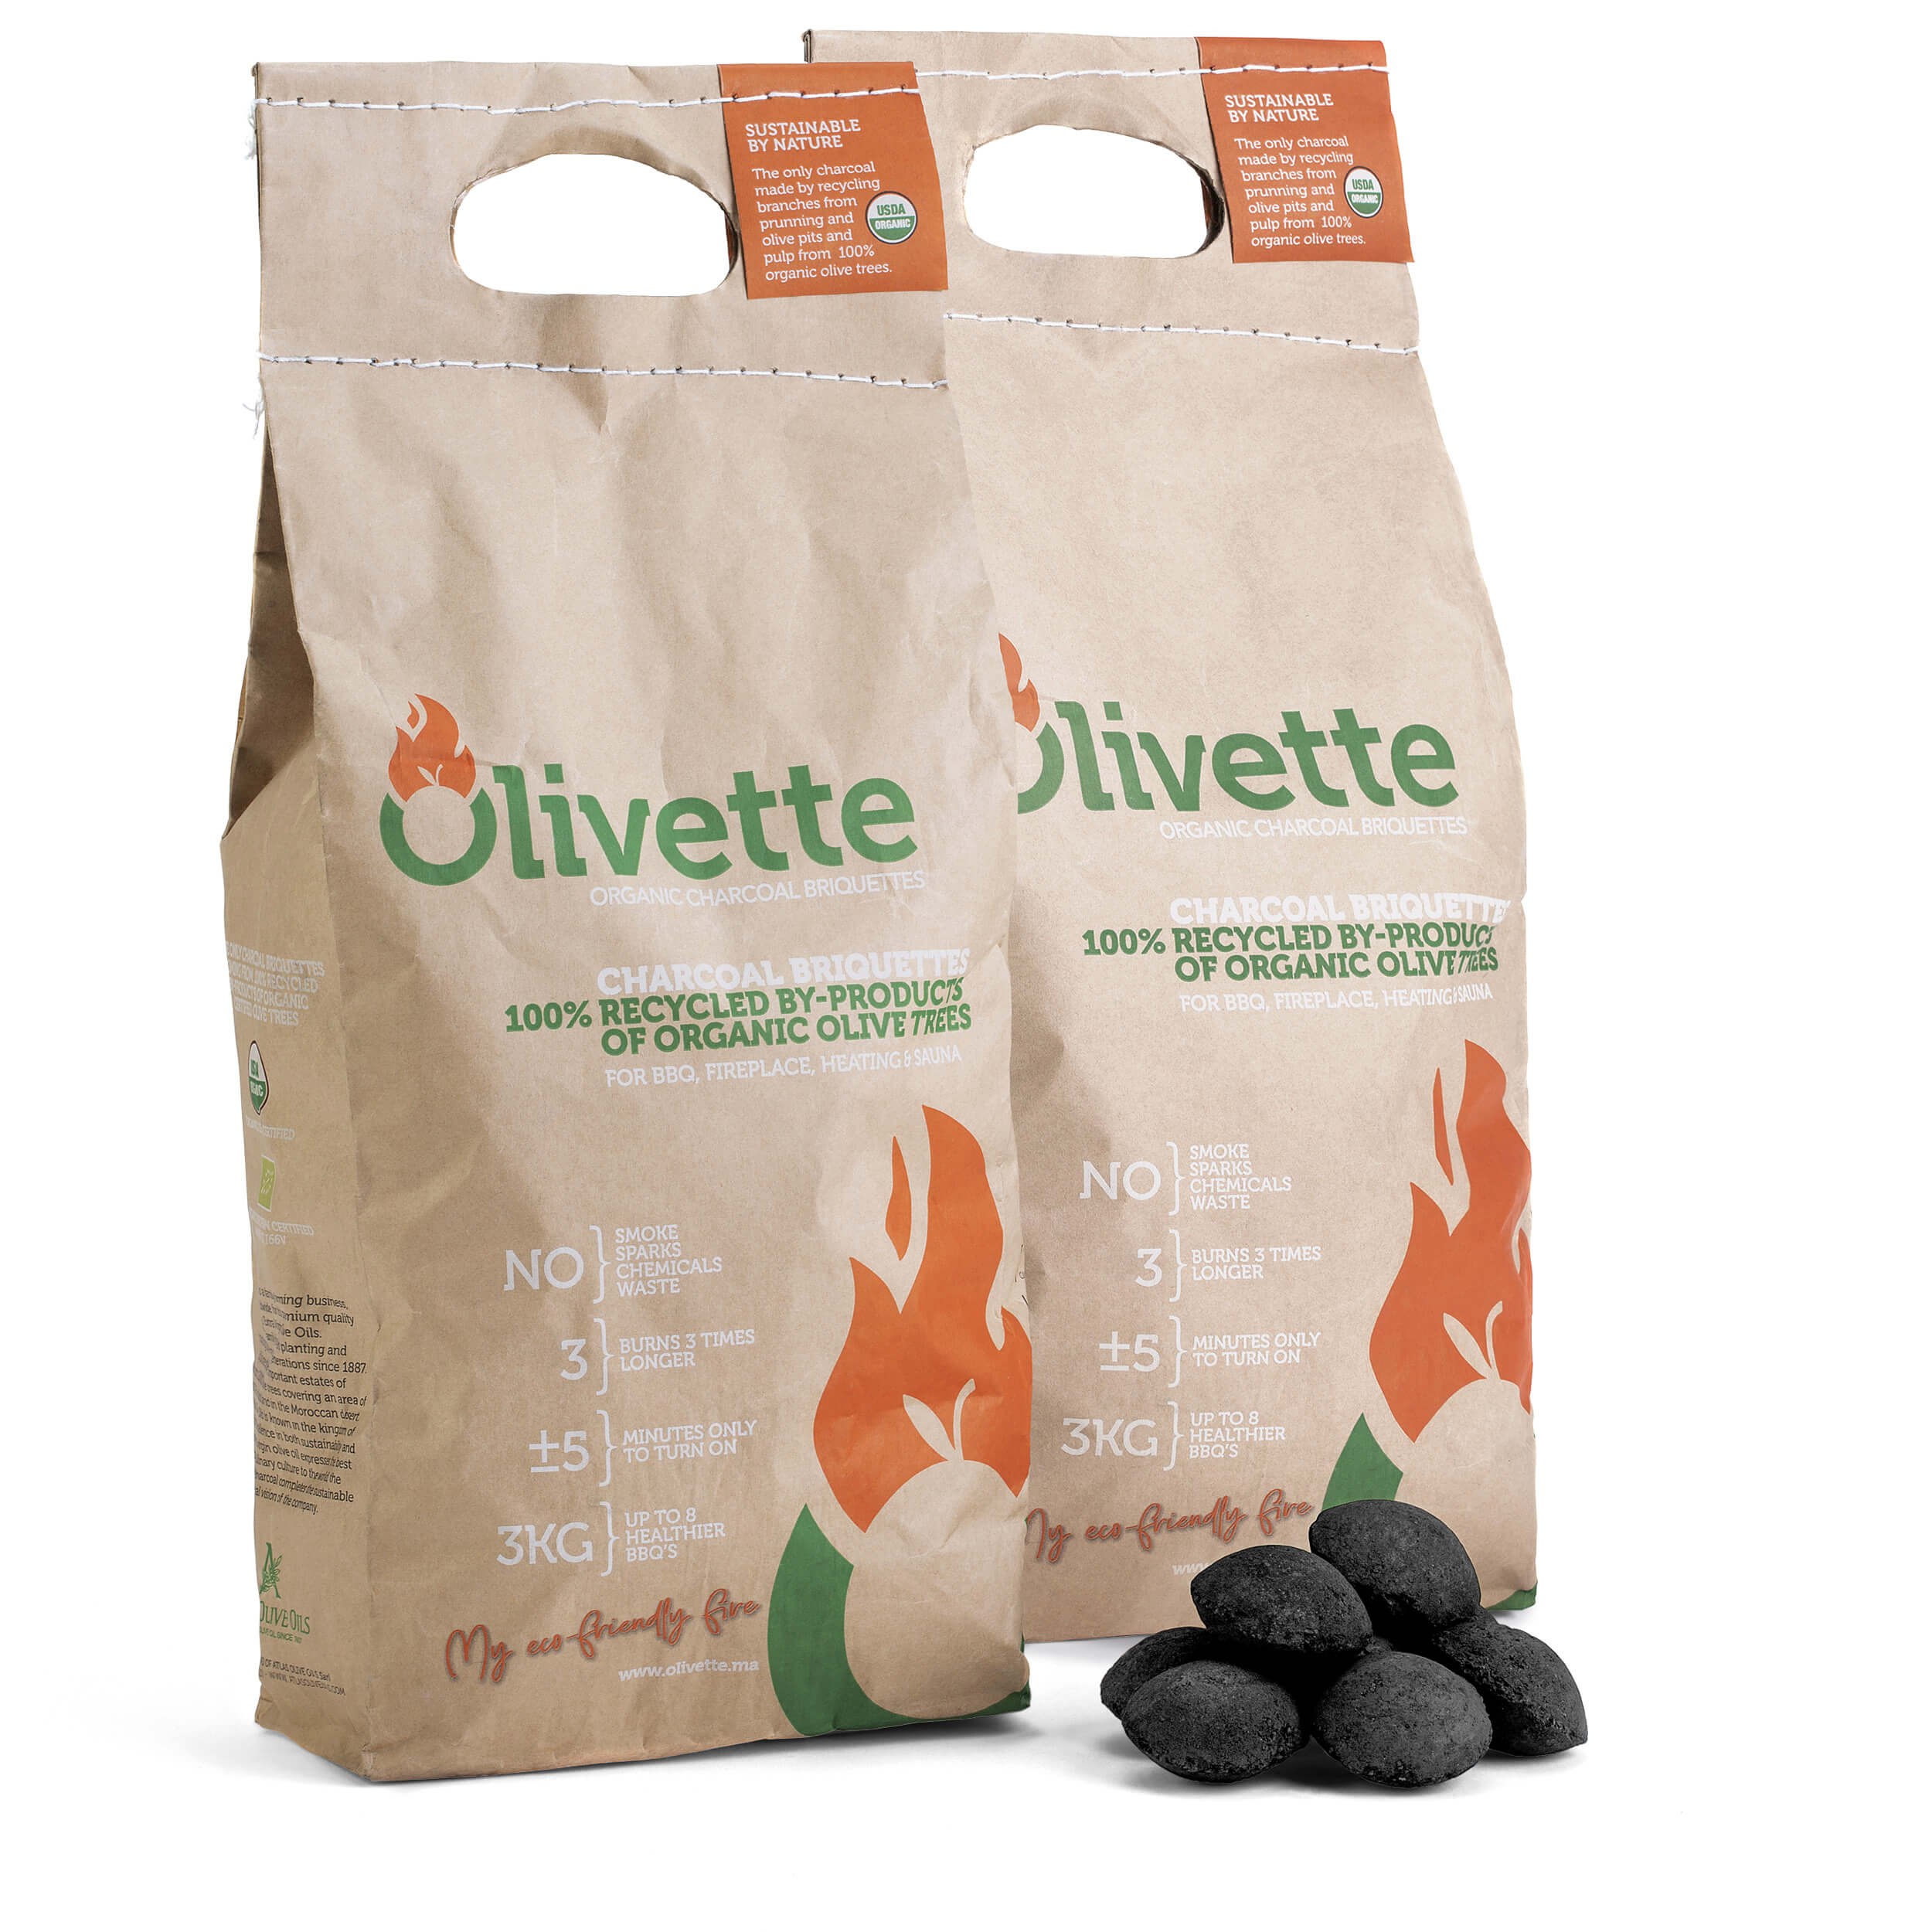 OLIVETTE 1st organic briquettes in the US market! Smoke free, long lasting. Natural. Made from recycling.